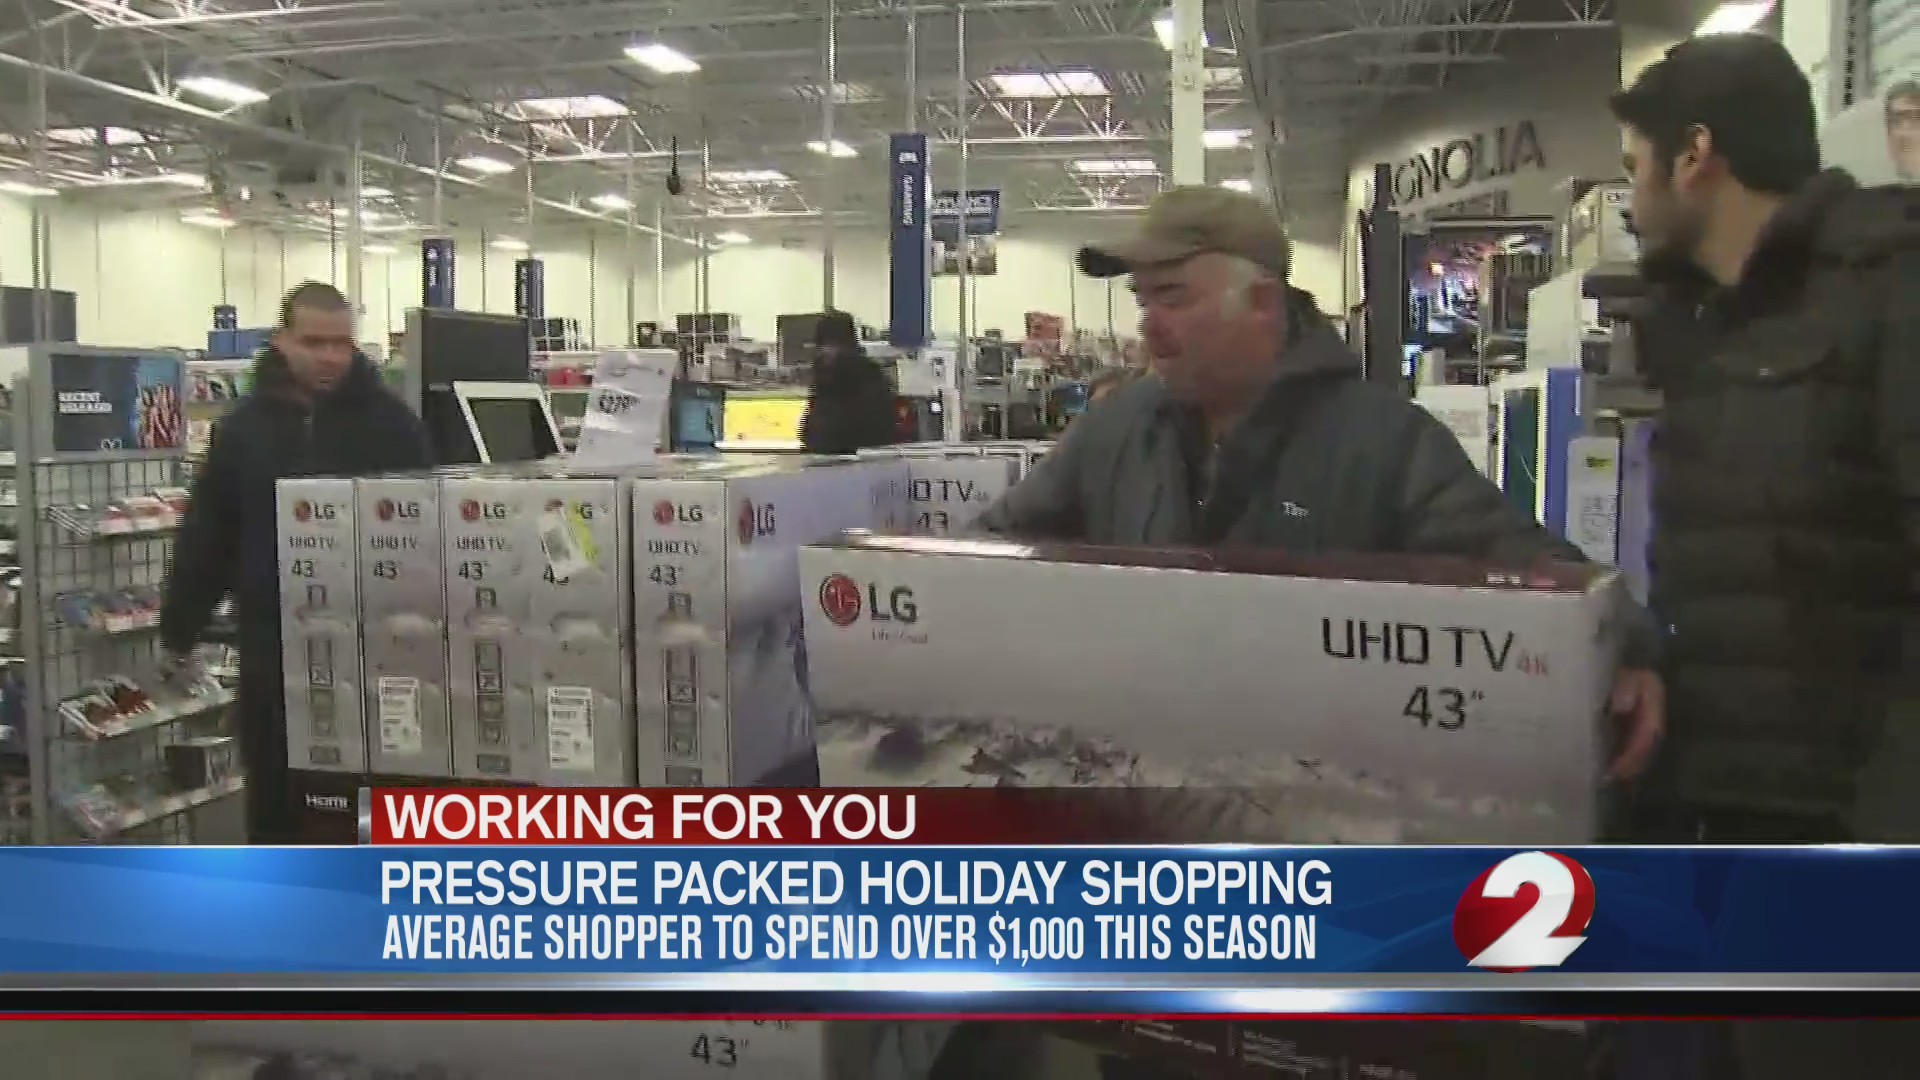 Pressure-packed holiday shopping